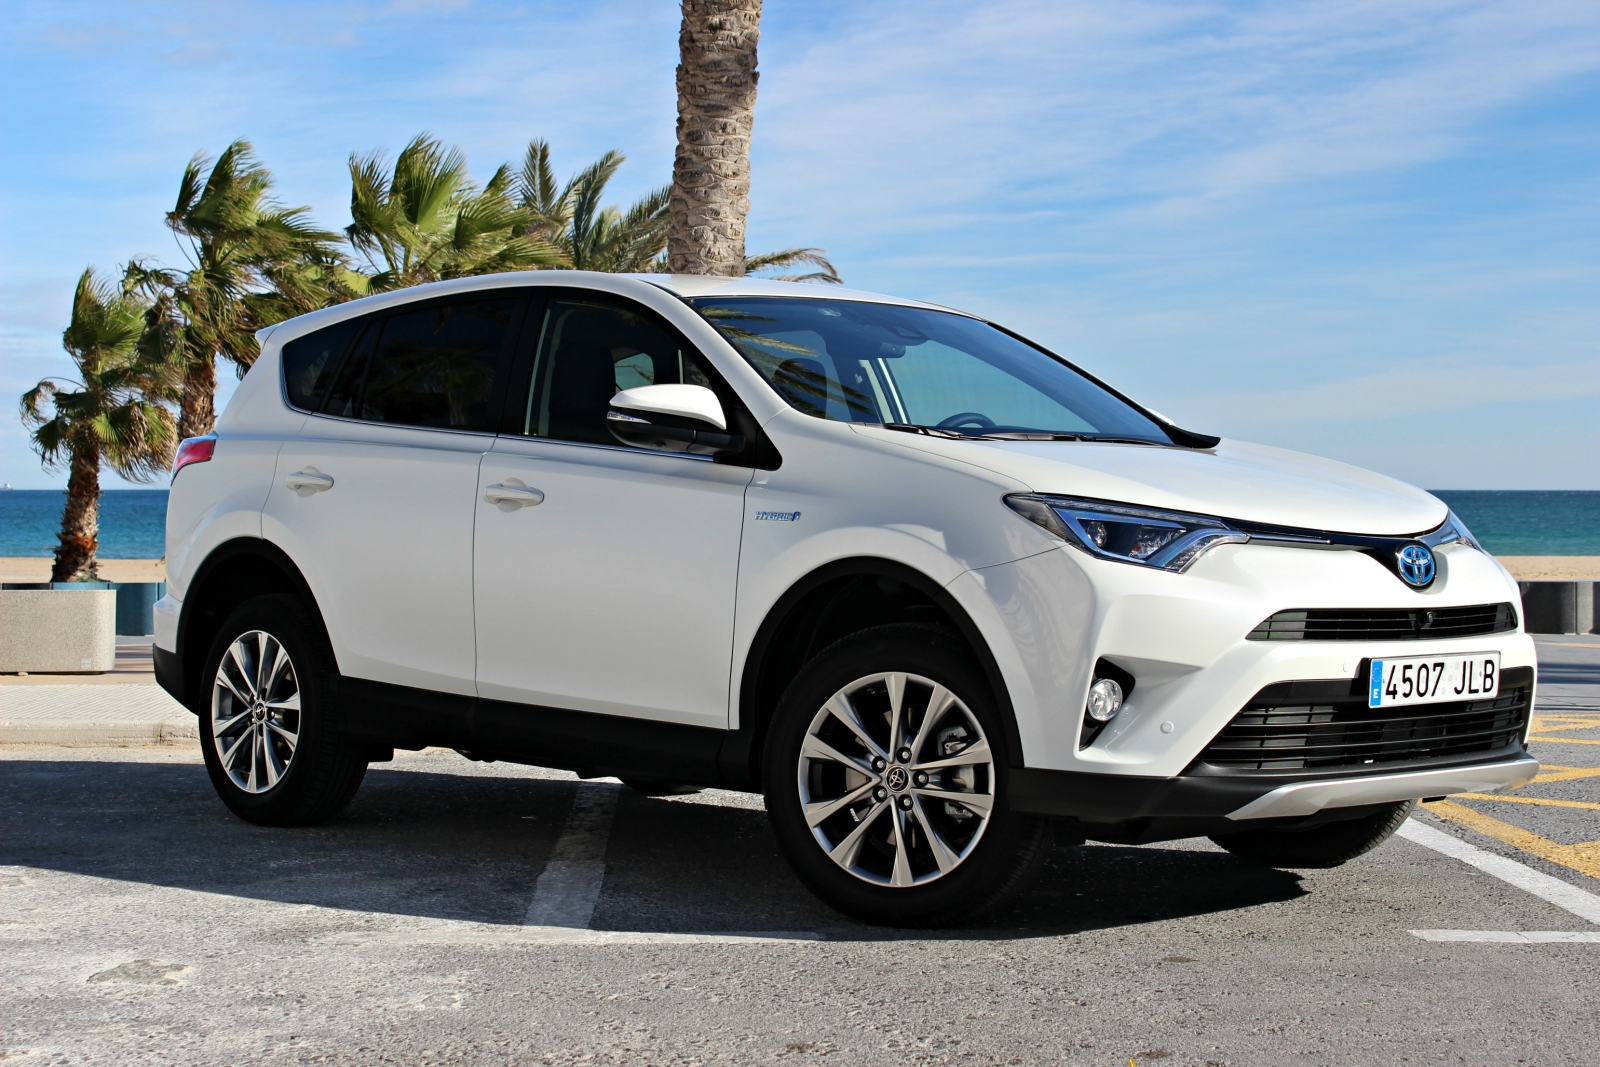 essai vid o toyota rav4 restyl l 39 hybride qui fait la diff rence. Black Bedroom Furniture Sets. Home Design Ideas